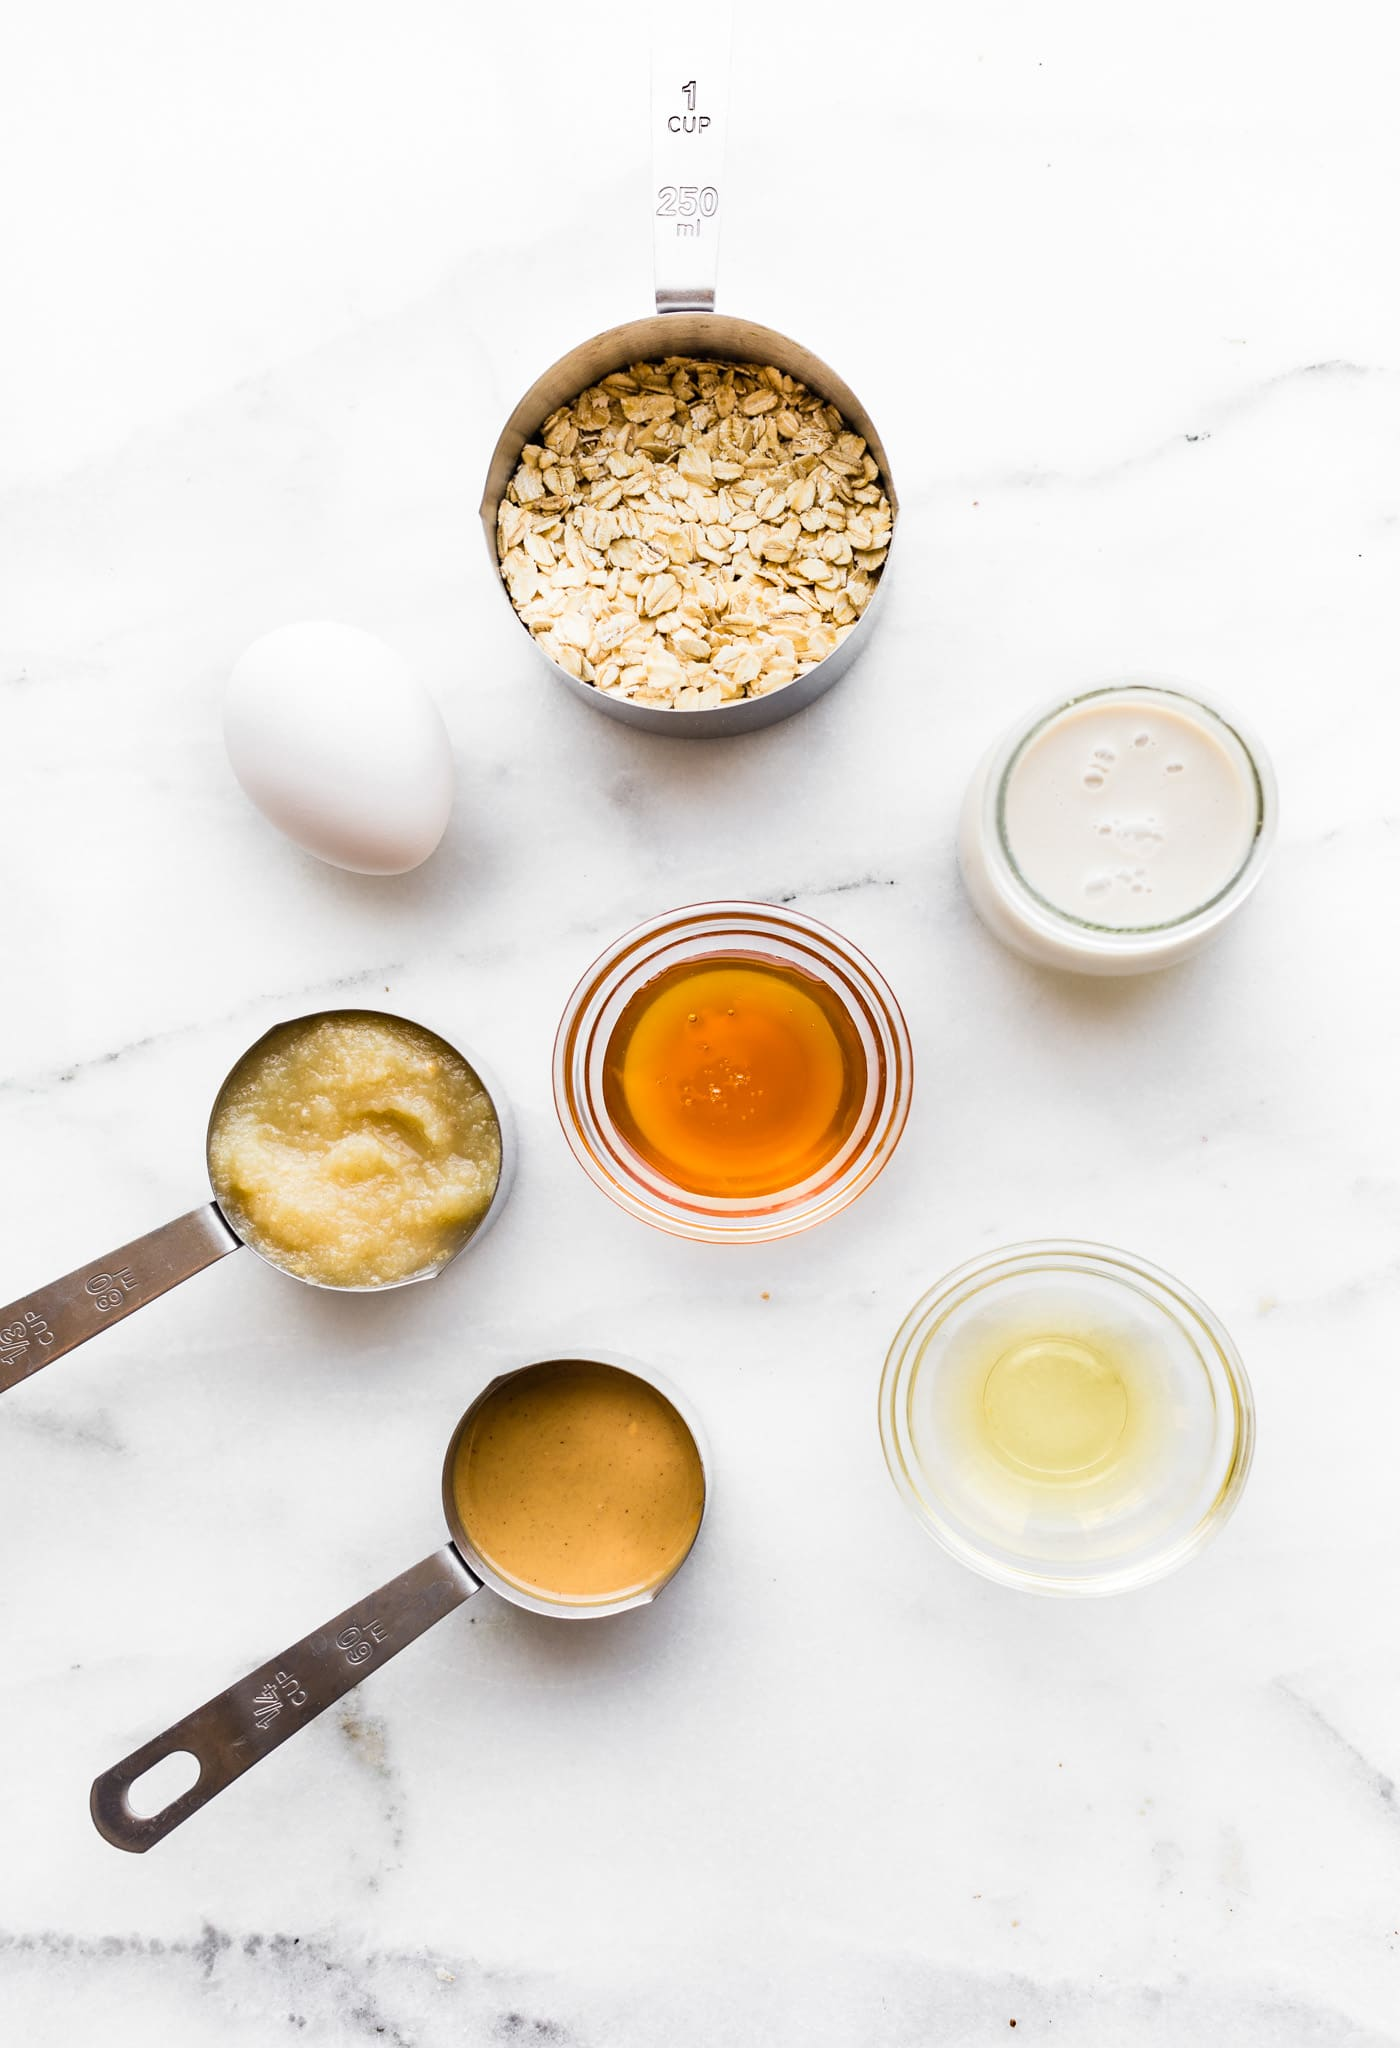 Overhead image of peanut butter waffle ingredients.